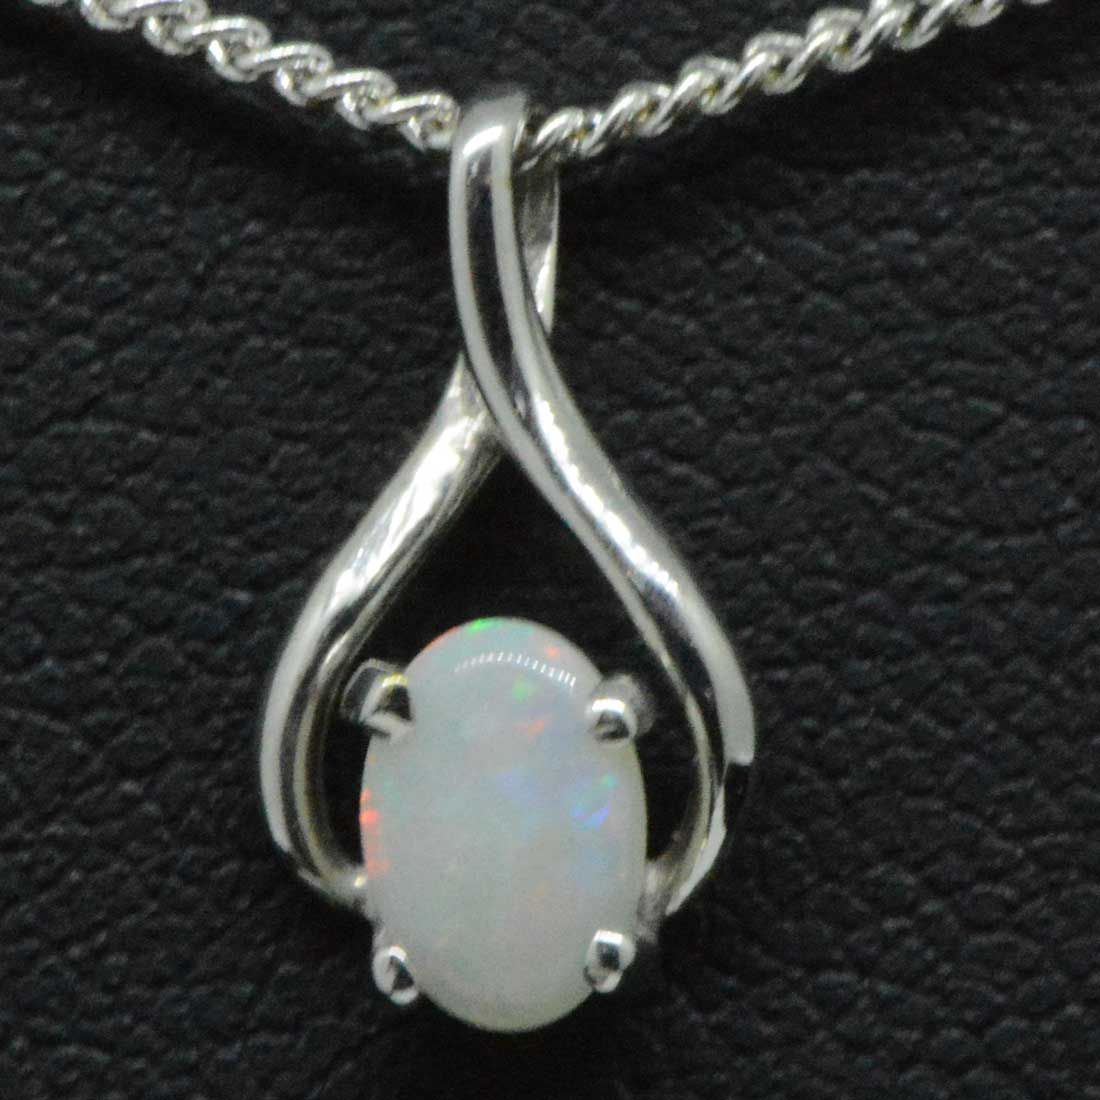 18ct white gold solid opal pendant (6mmx4mm)